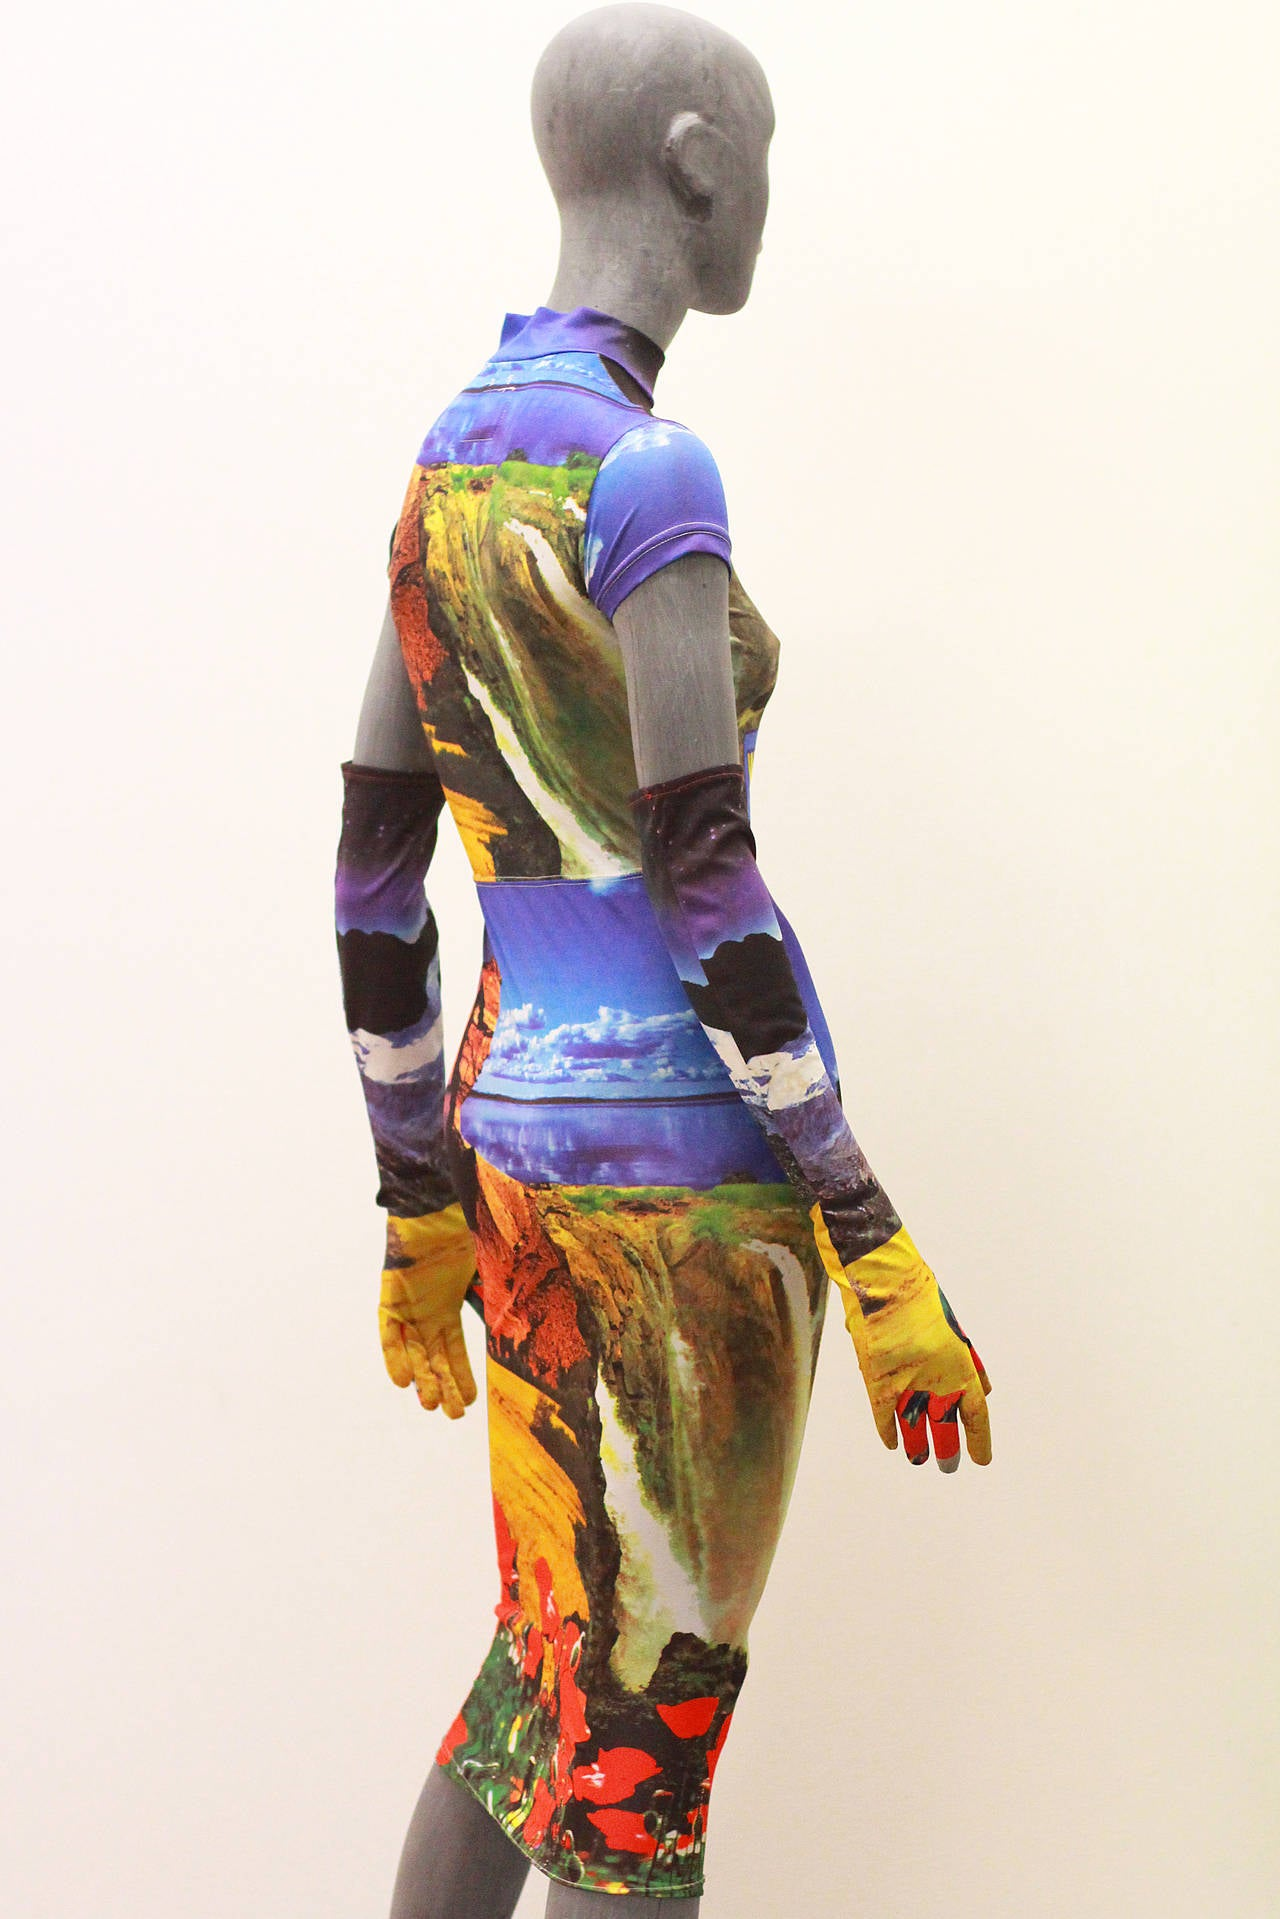 W.&.L.T. (WILD AND LETHAL TRASH) by Walter Van Beirendonck